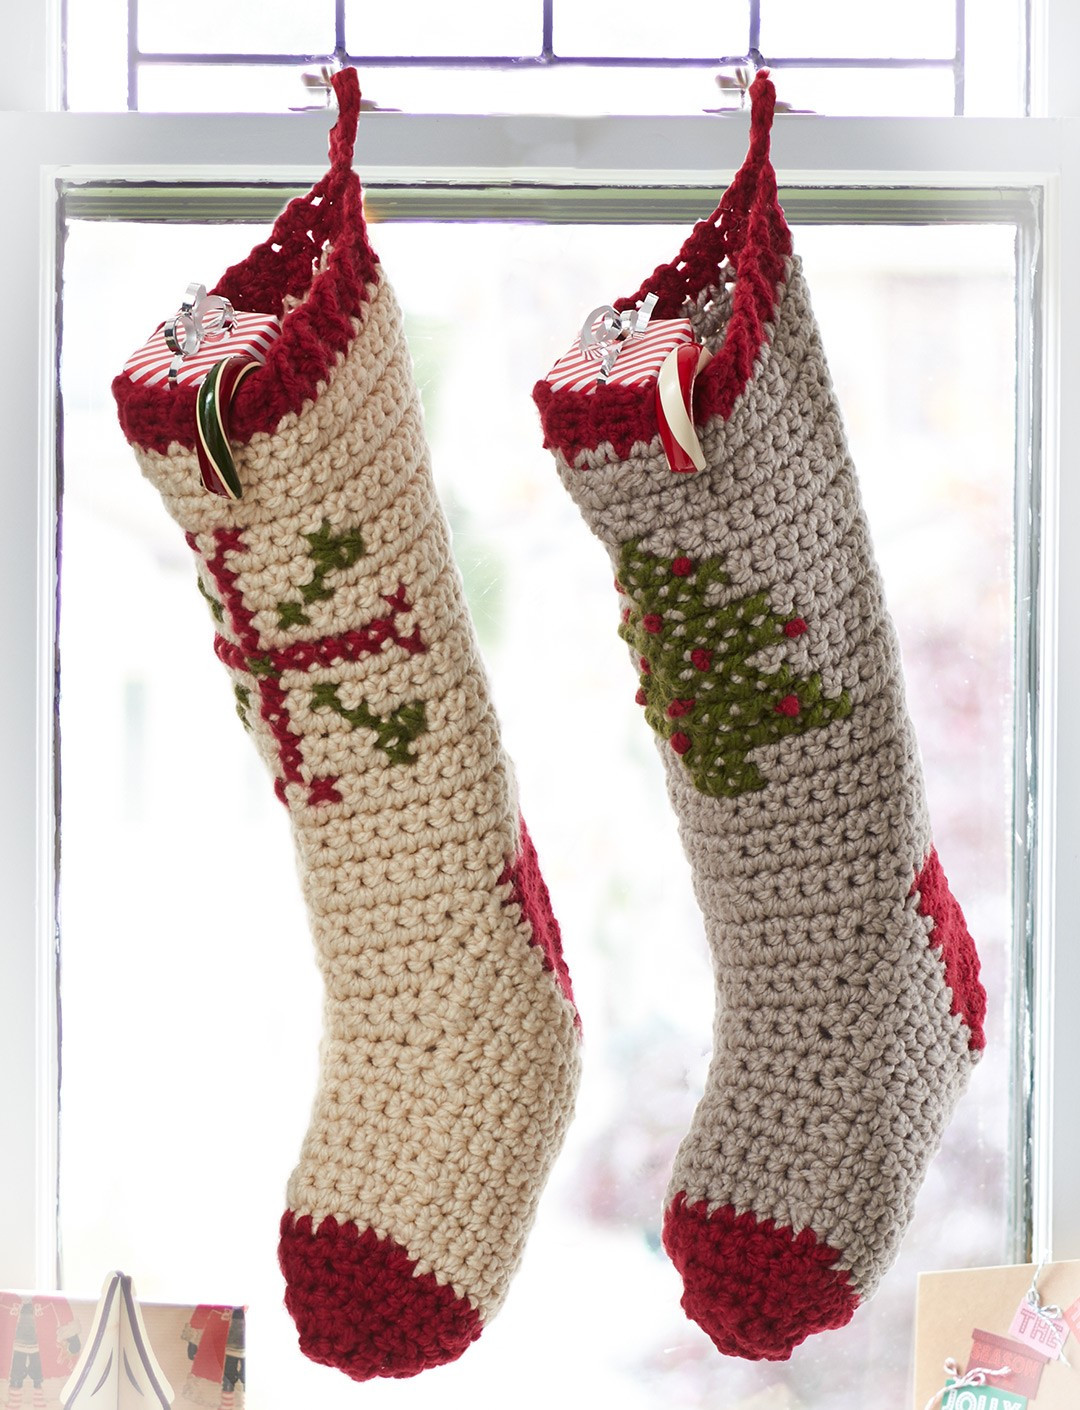 Inspirational Bernat Cross Stitch Stockings Crochet Pattern Crochet Pattern for Christmas Stocking Of Elegant 40 All Free Crochet Christmas Stocking Patterns Patterns Hub Crochet Pattern for Christmas Stocking